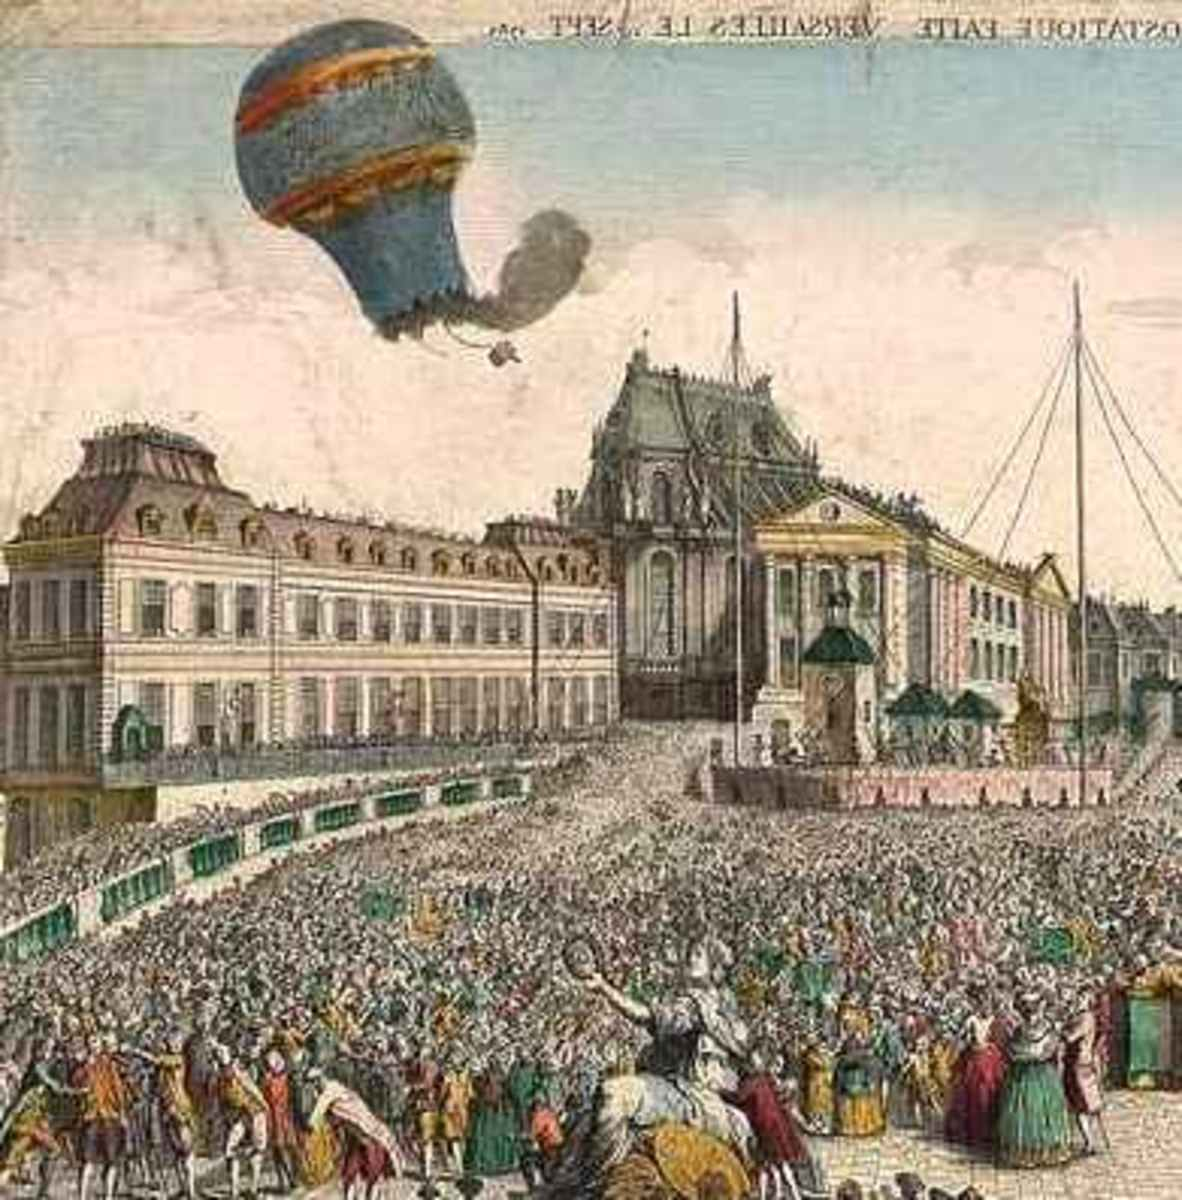 Montgolfier brothers balloon flight Paris street scene